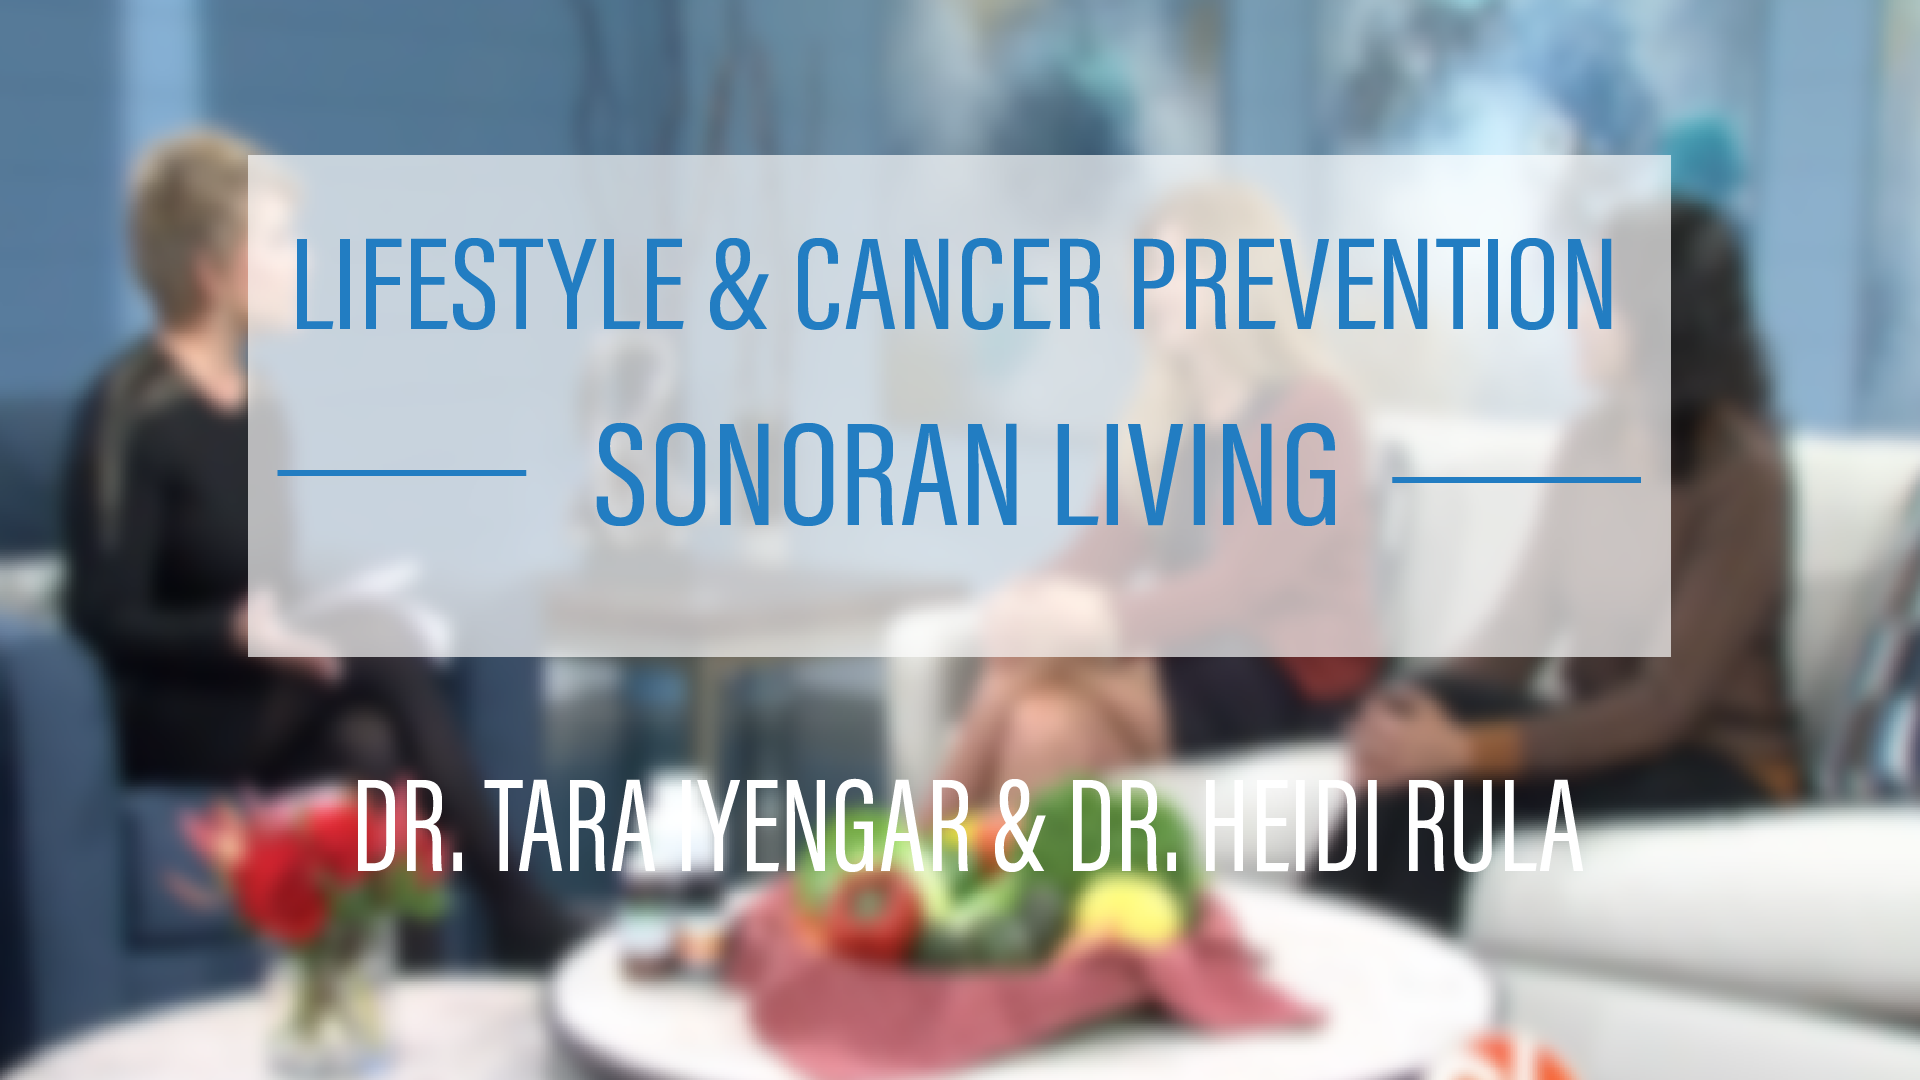 Lifestyle & Cancer Prevention